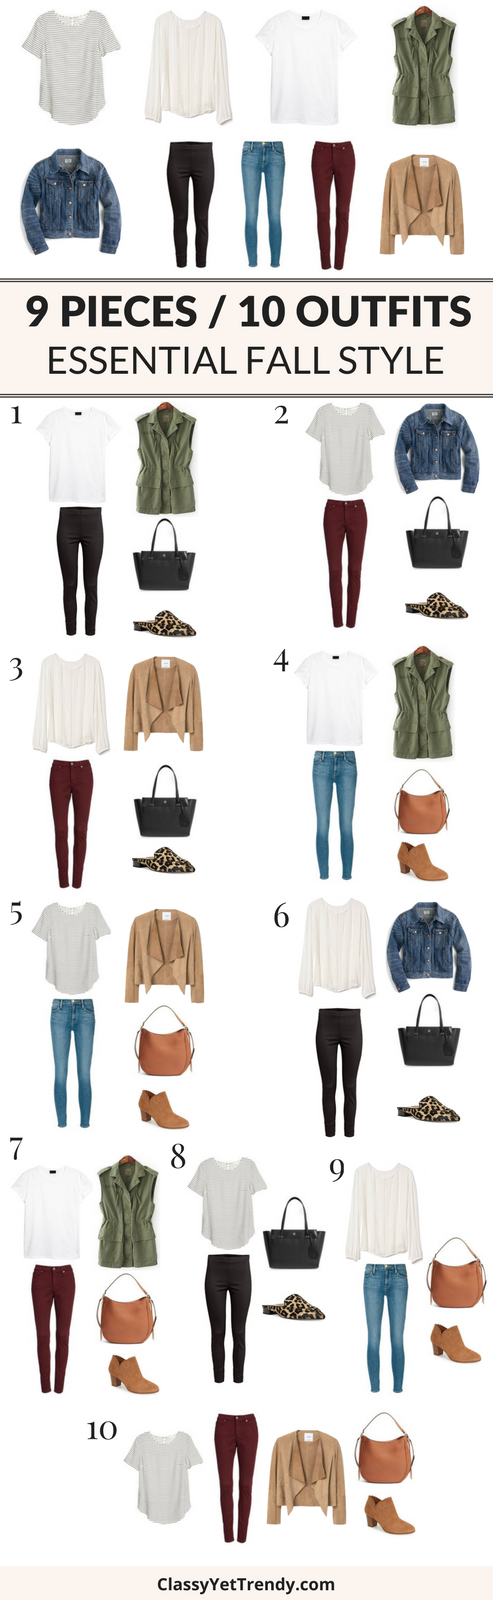 9 Pieces / 10 Outfits (Essential Fall Style)